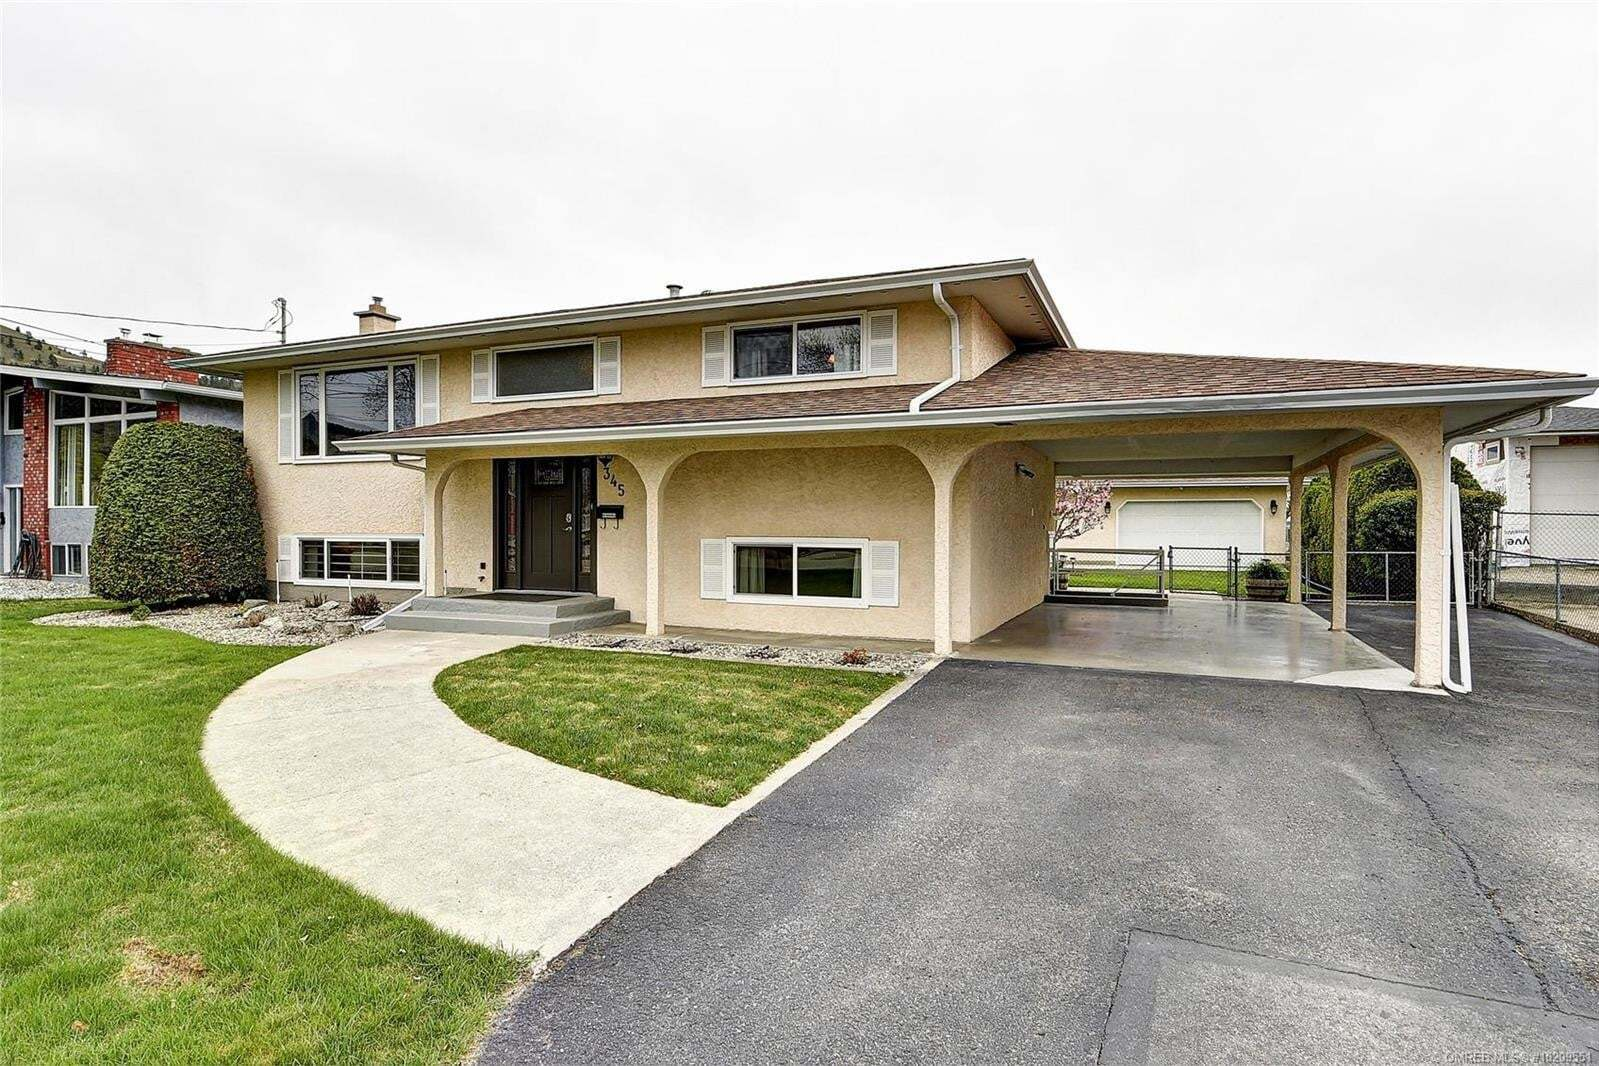 House for sale at 345 Husch Rd Kelowna British Columbia - MLS: 10209551